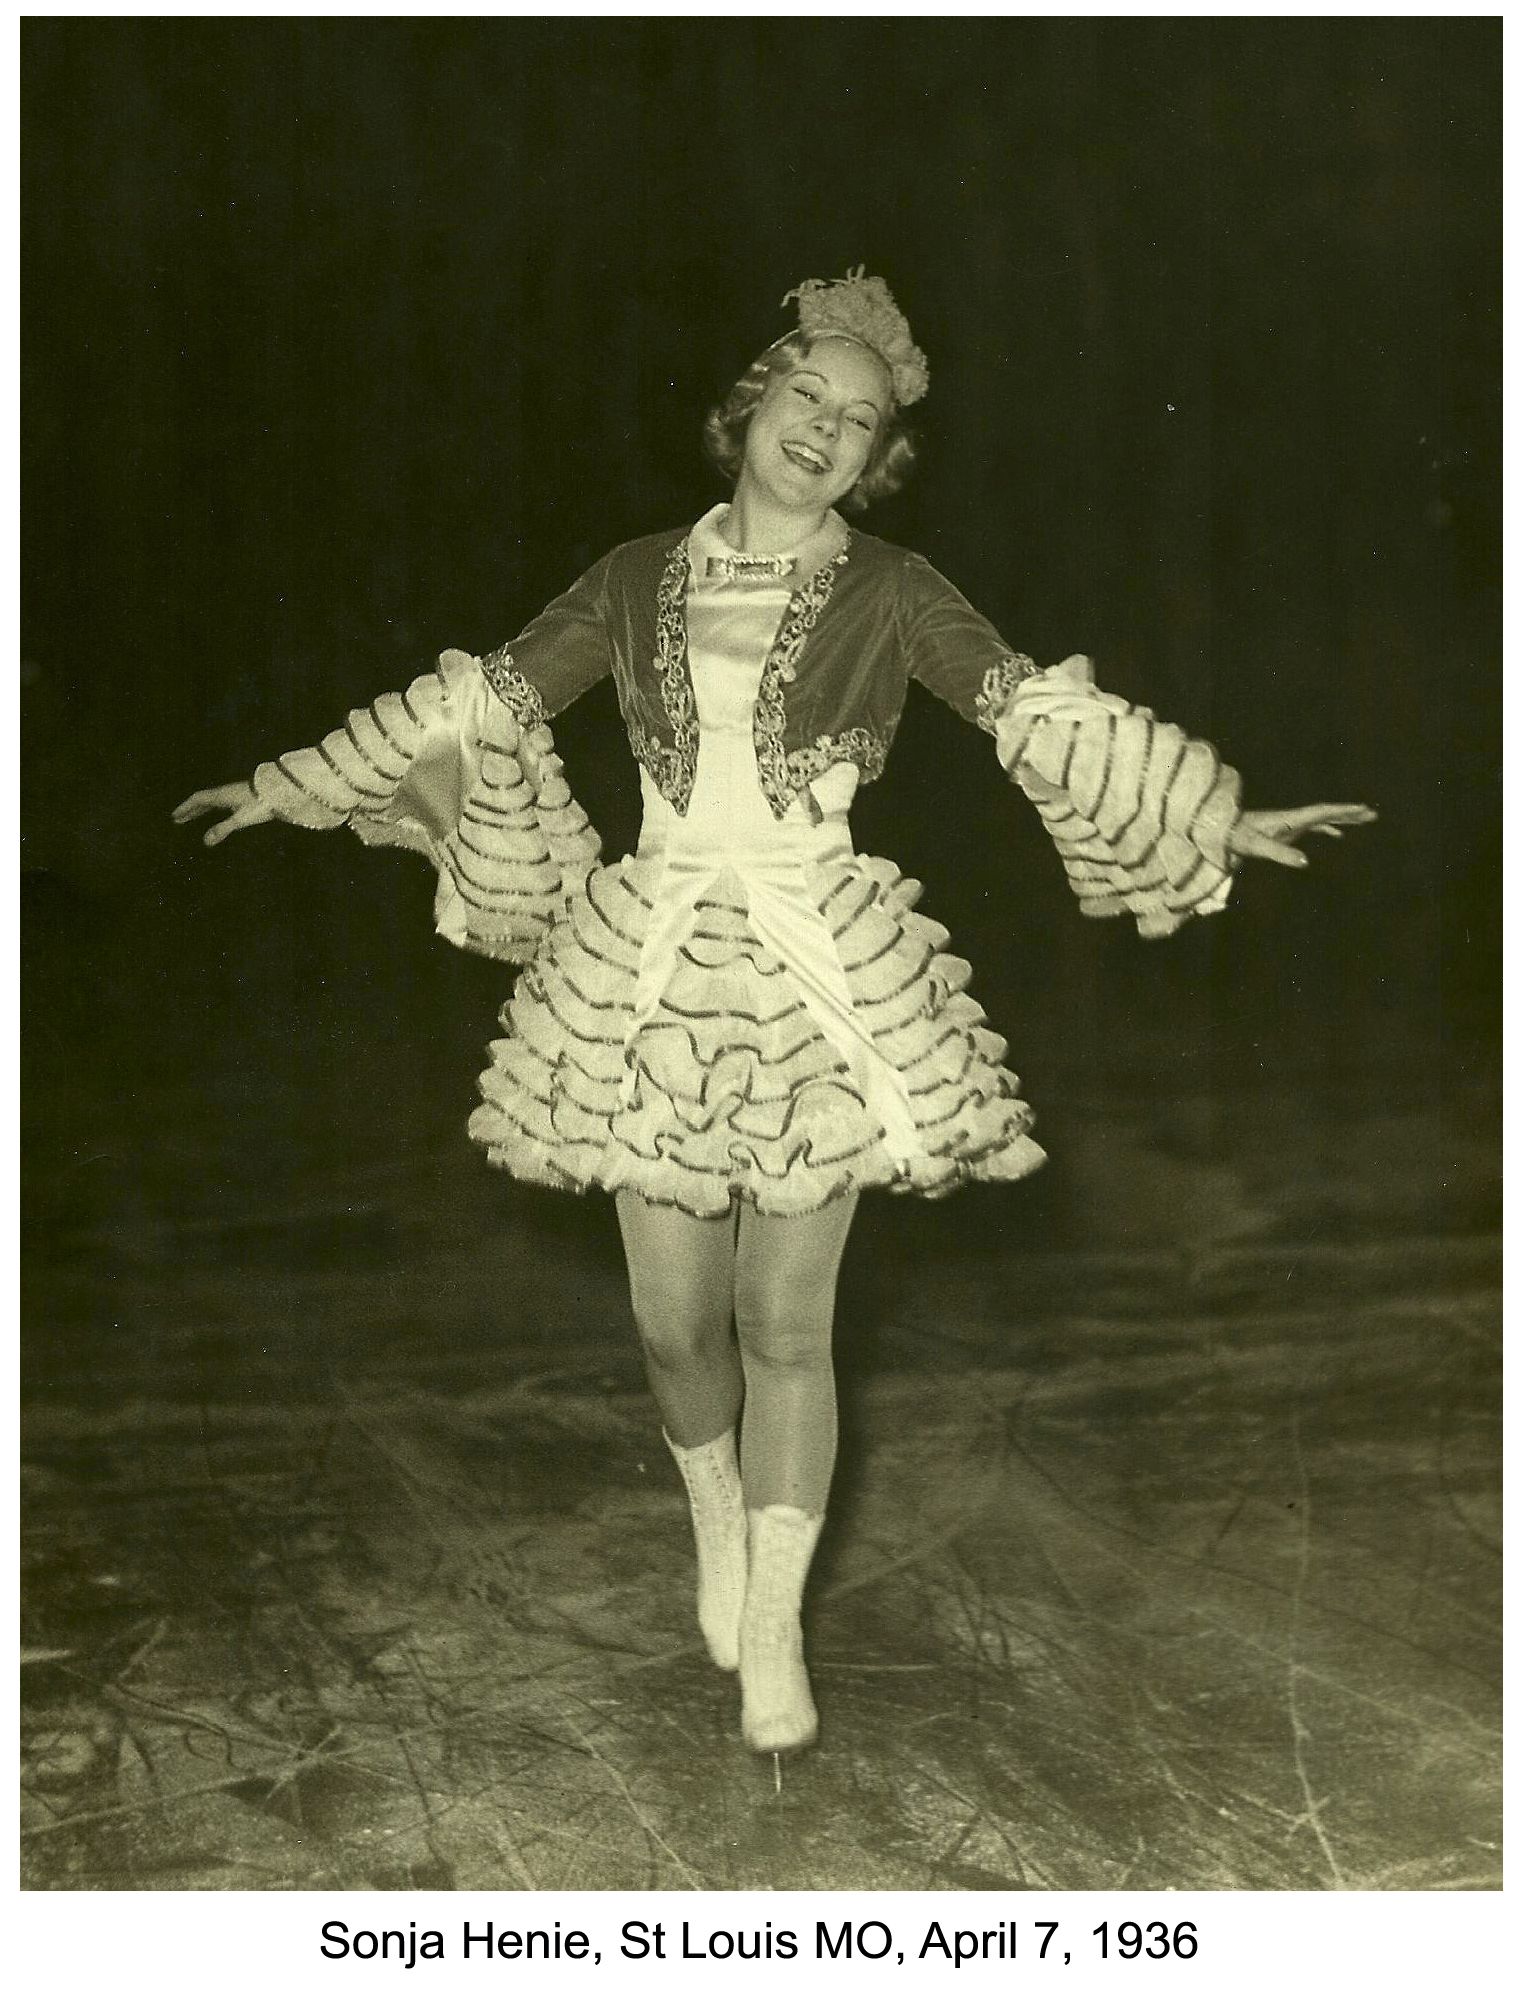 Sonja Henie facts